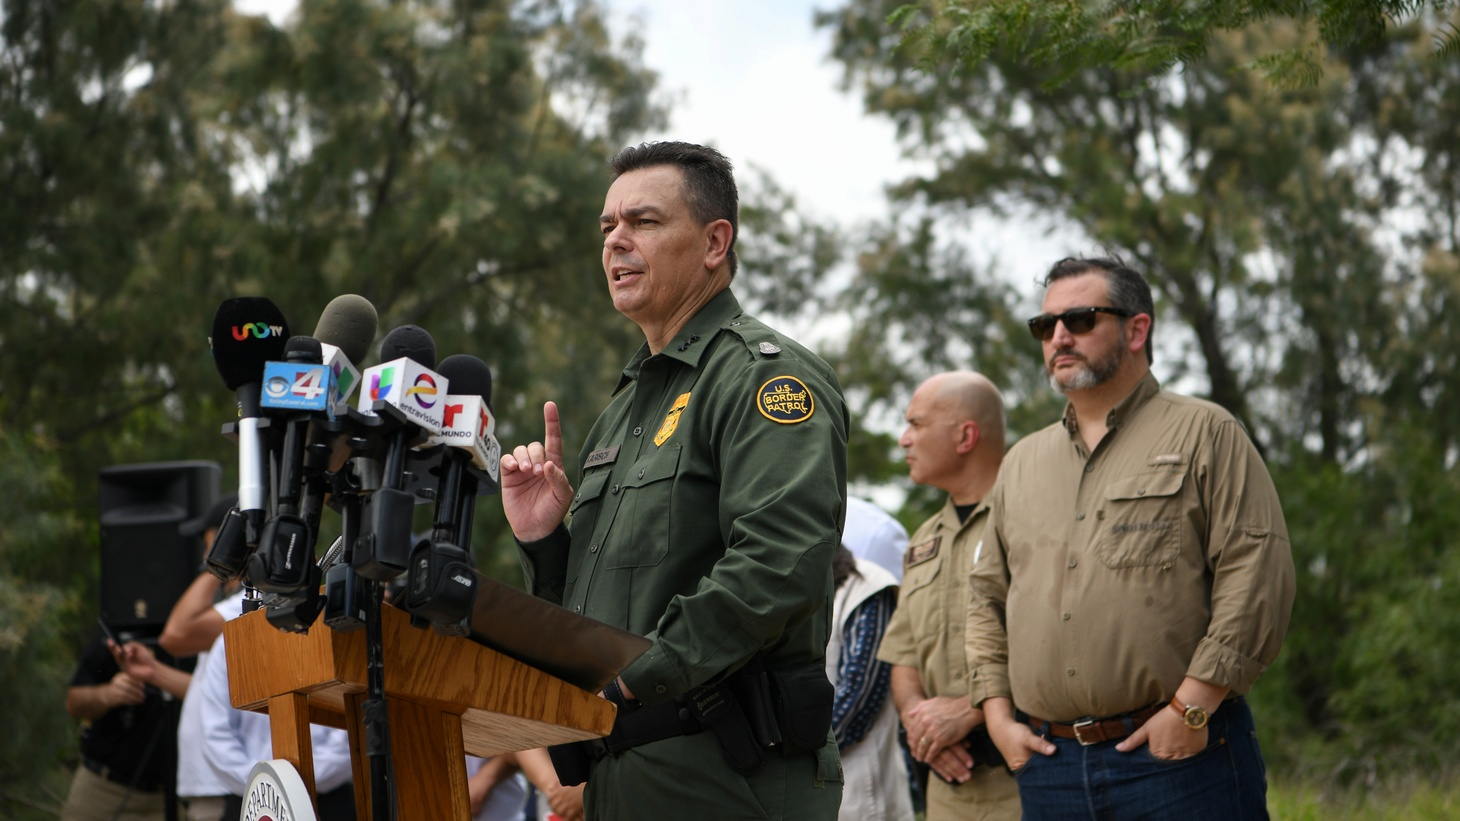 Rodolfo Karisch, Rio Grande Valley sector chief patrol agent for the U.S. Border Patrol, addresses members of the media with Senator Ted Cruz (R-TX) during a 'Border Safety Initiative' event in Mission, Texas, U.S., July 1, 2019.